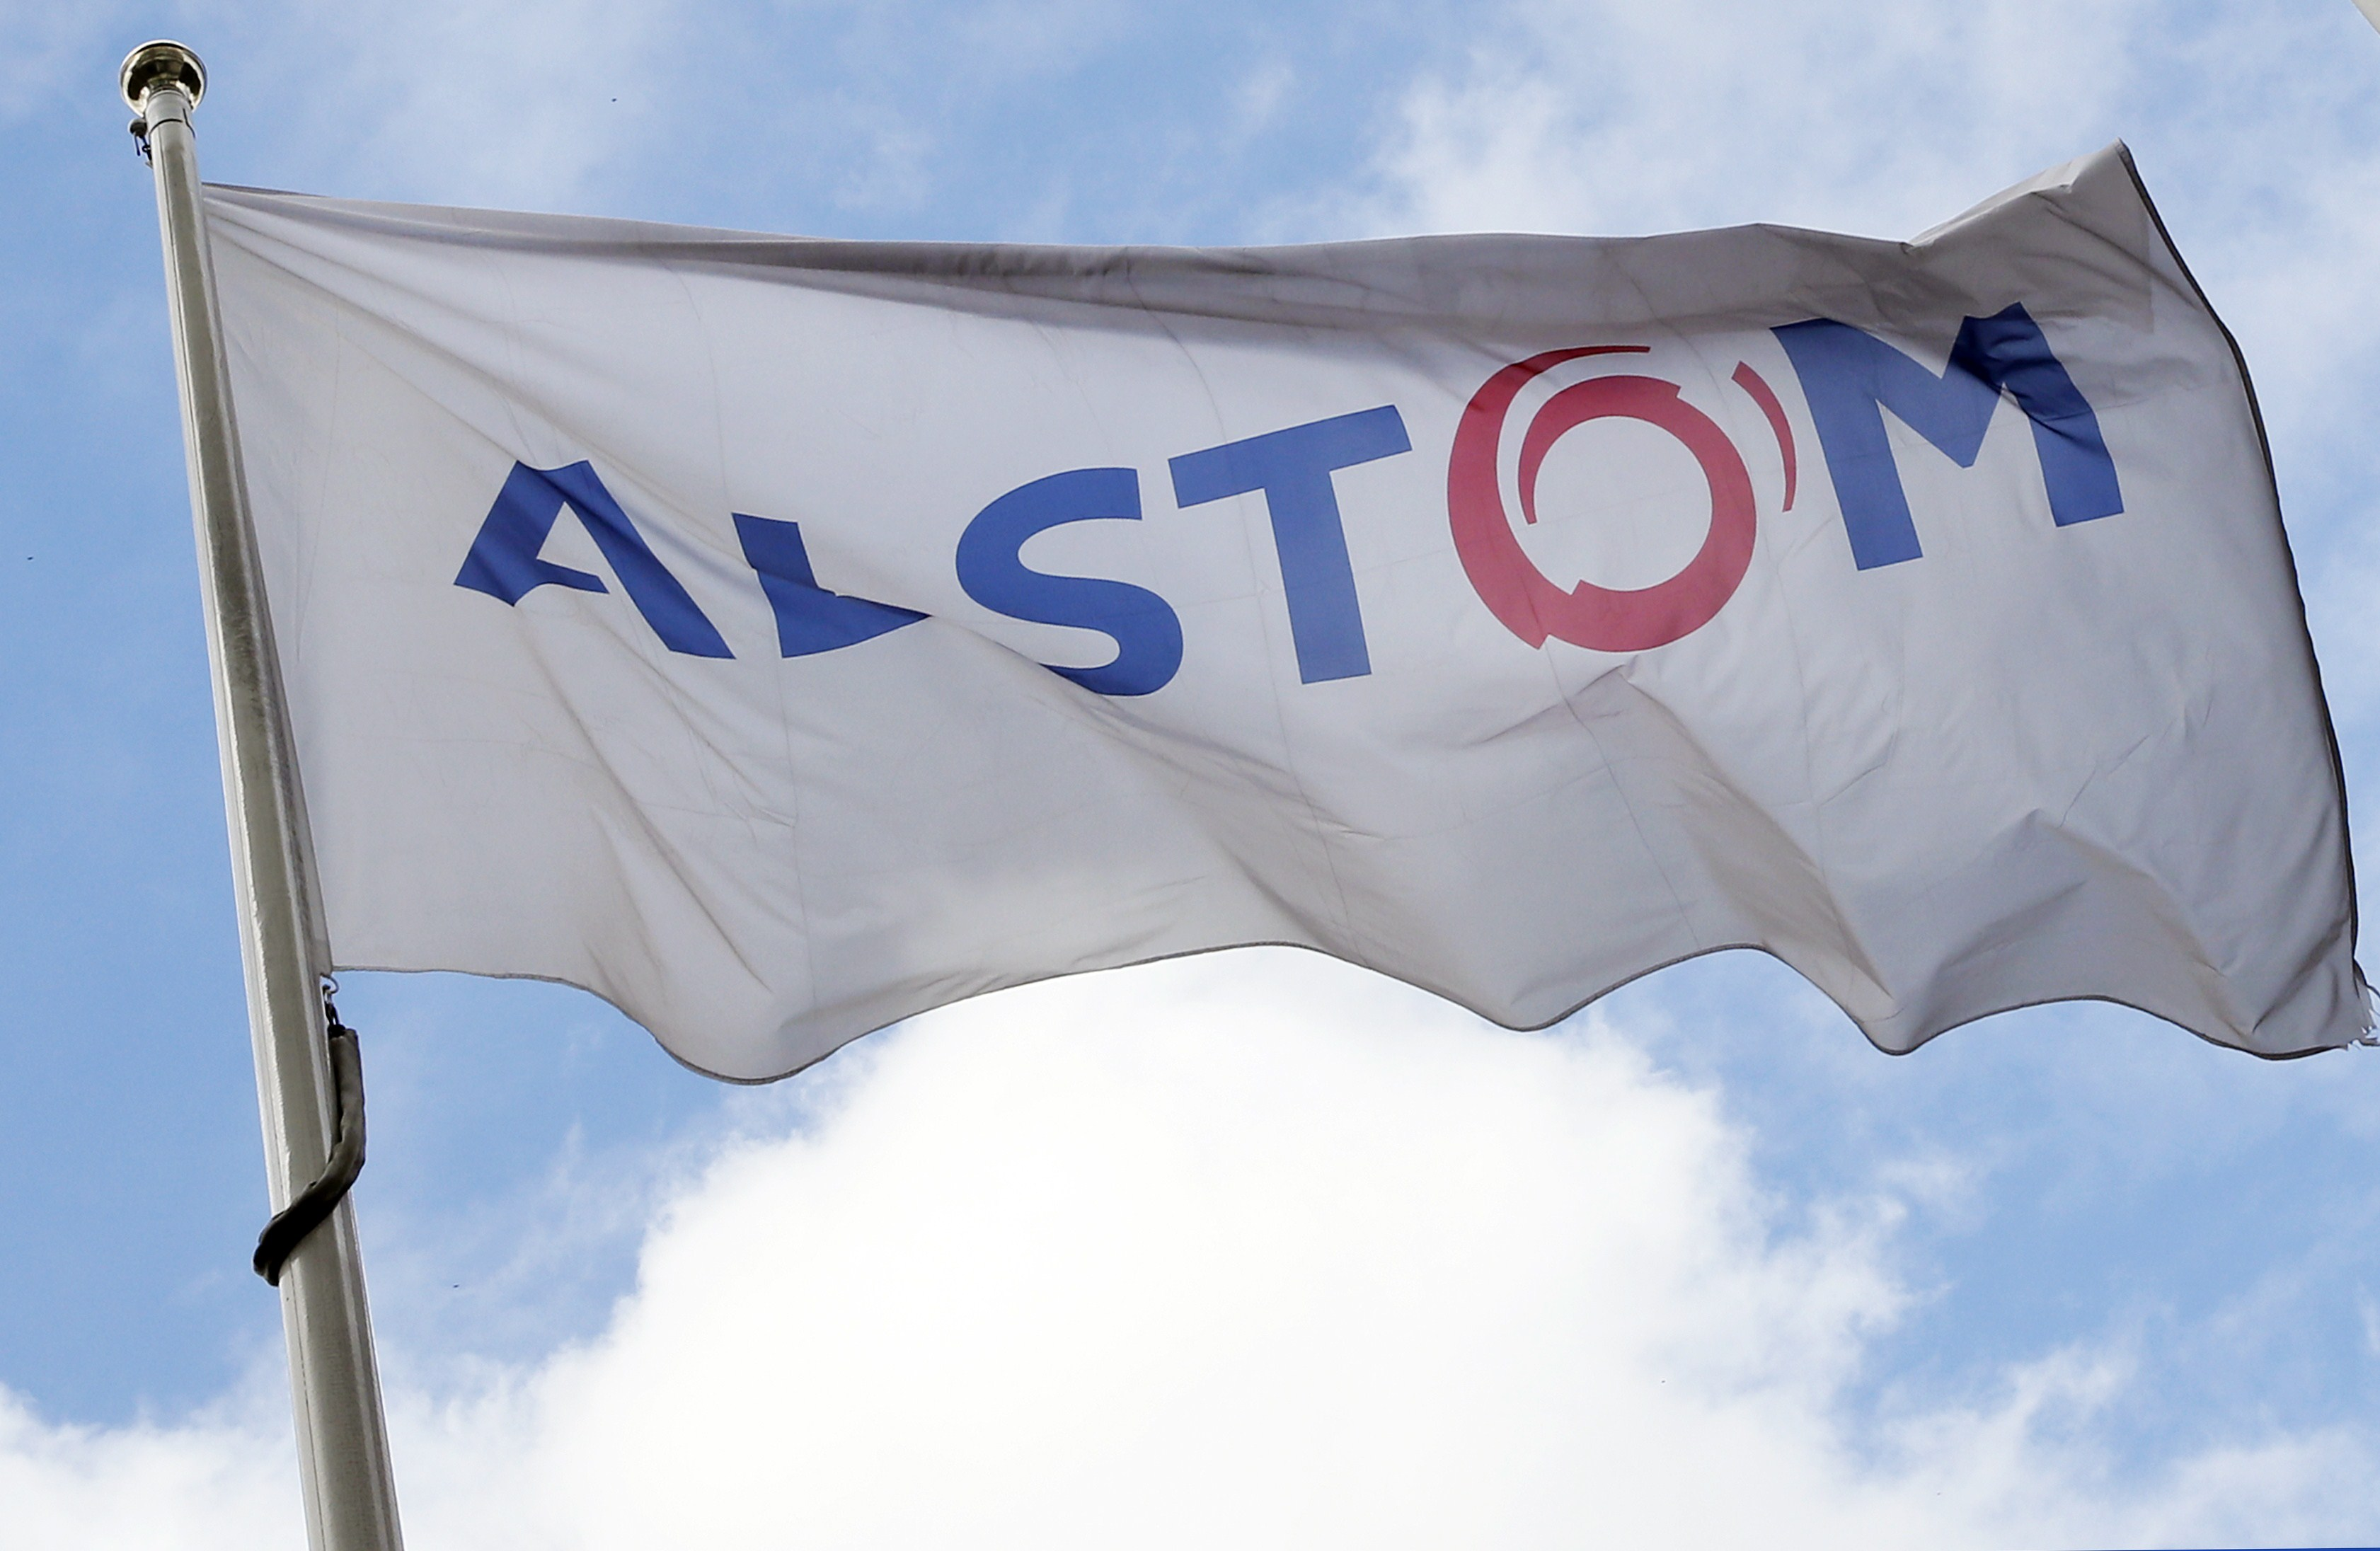 Alstom still prefers GE over Siemens and Mitsubishi.